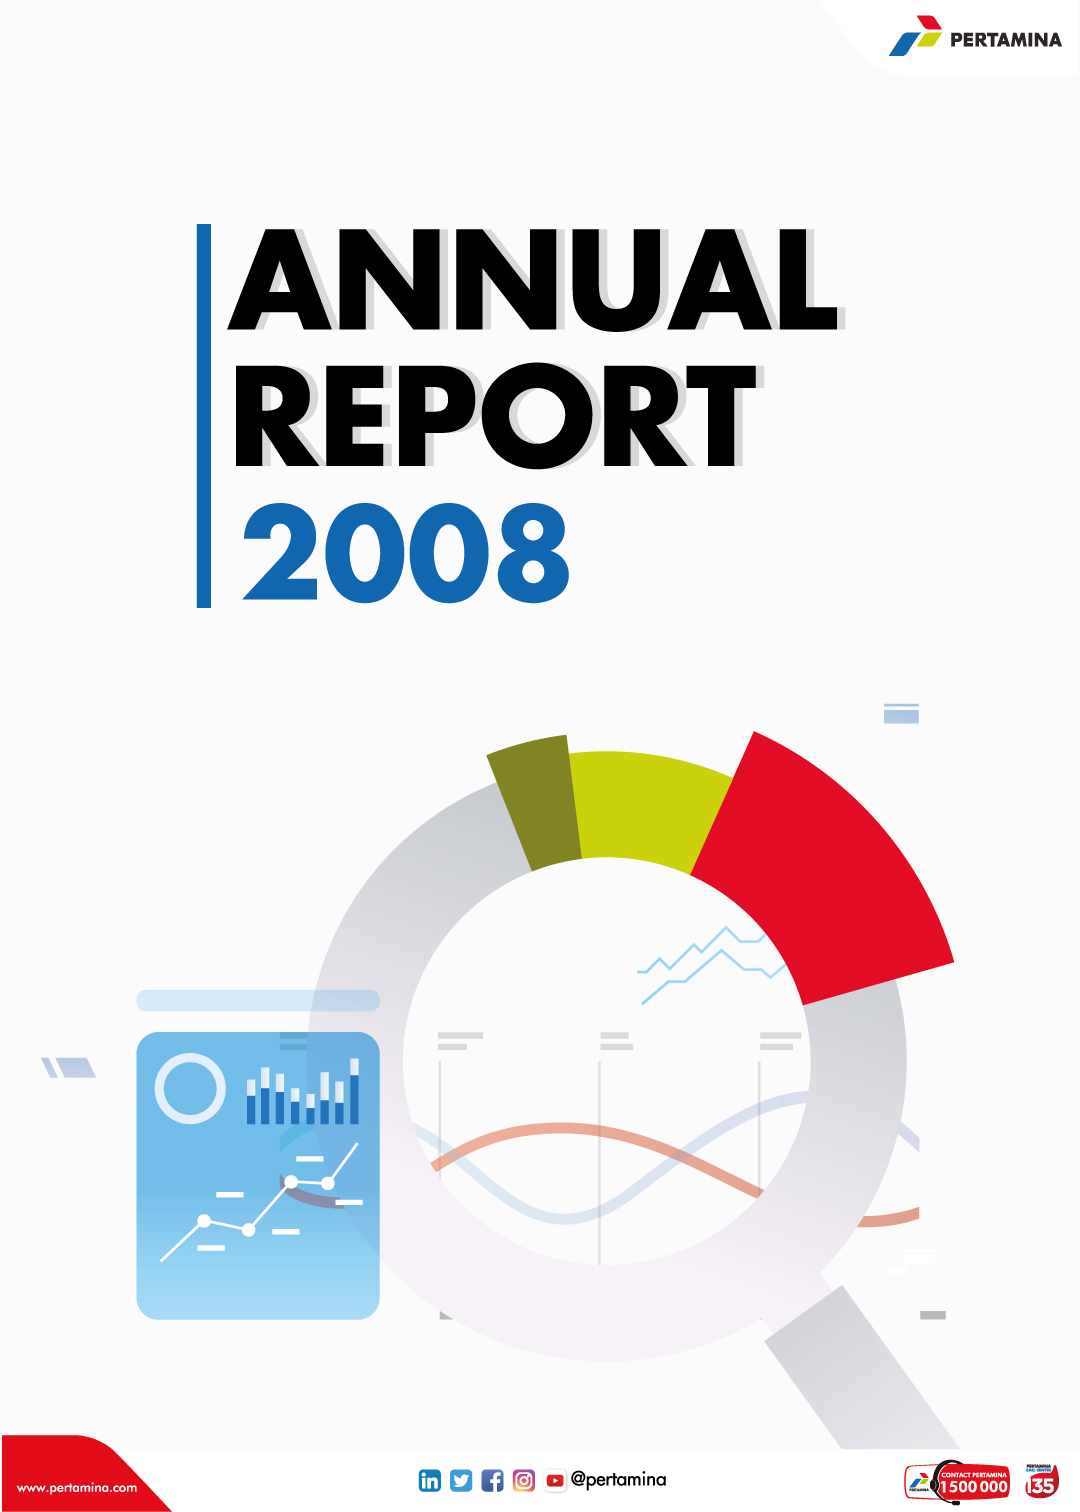 Annual Report Pertamina 2008